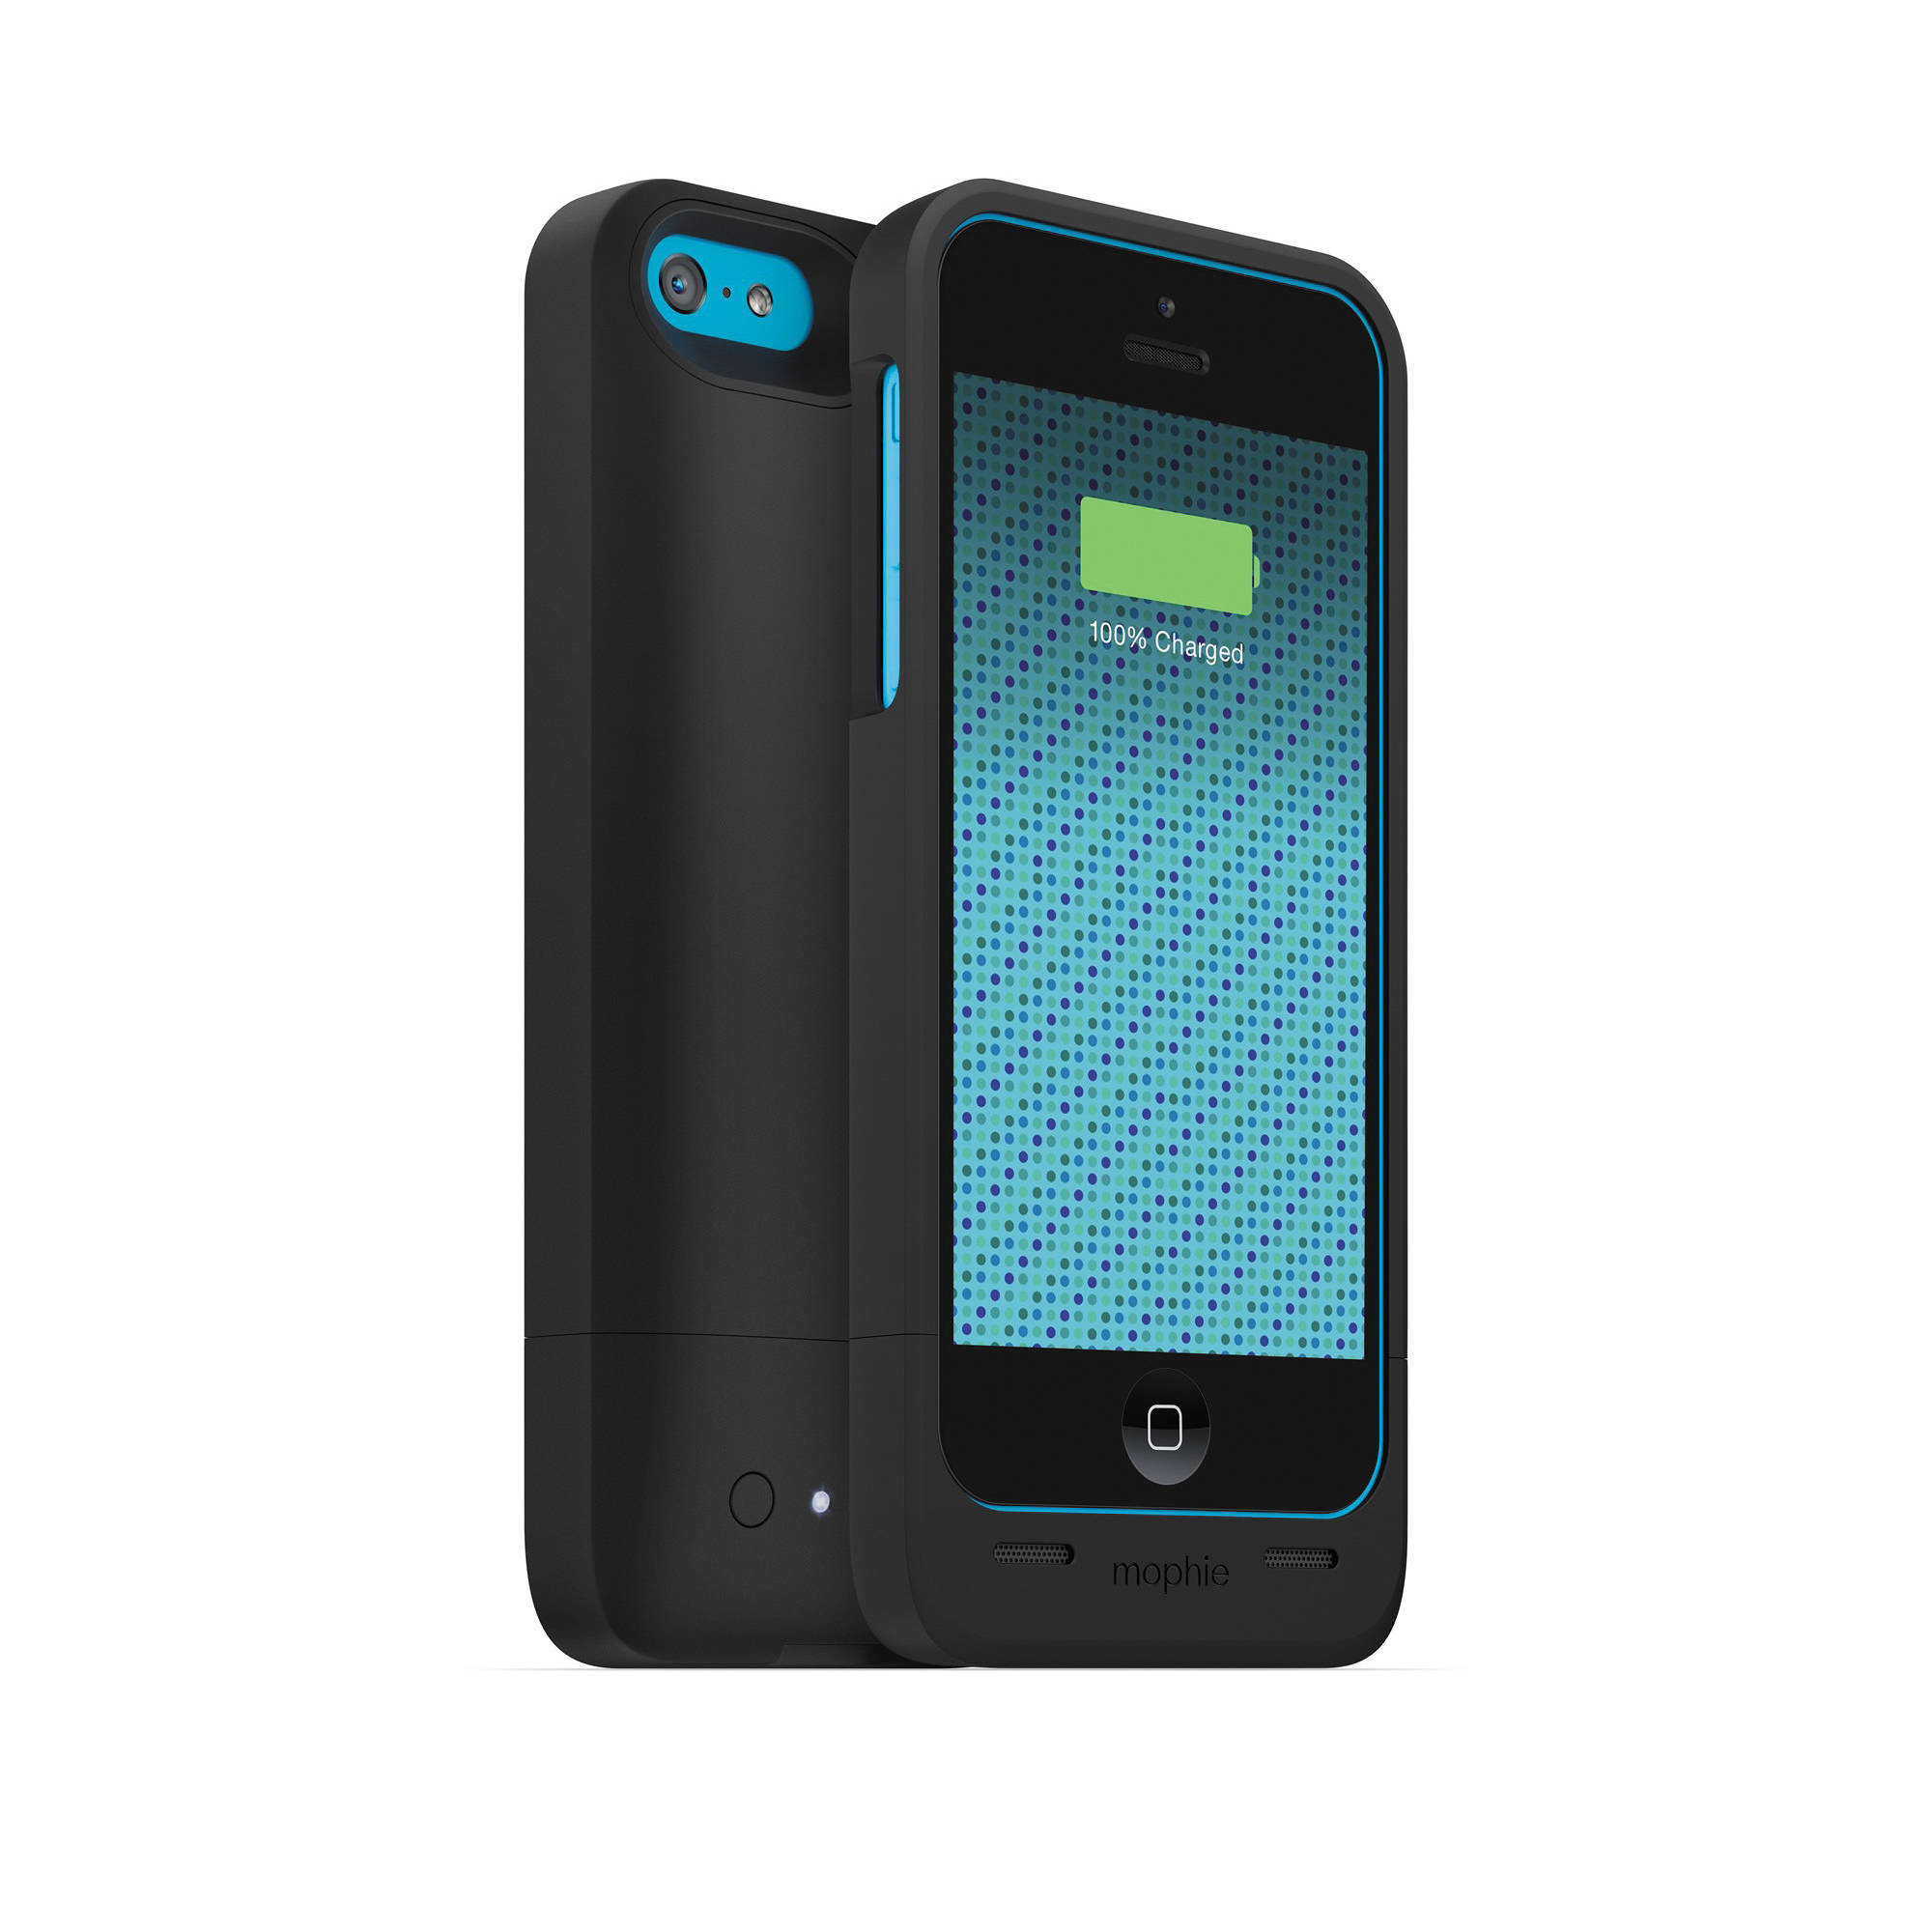 low priced 30f2f b5415 mophie juice pack helium for iPhone 5c (Black)